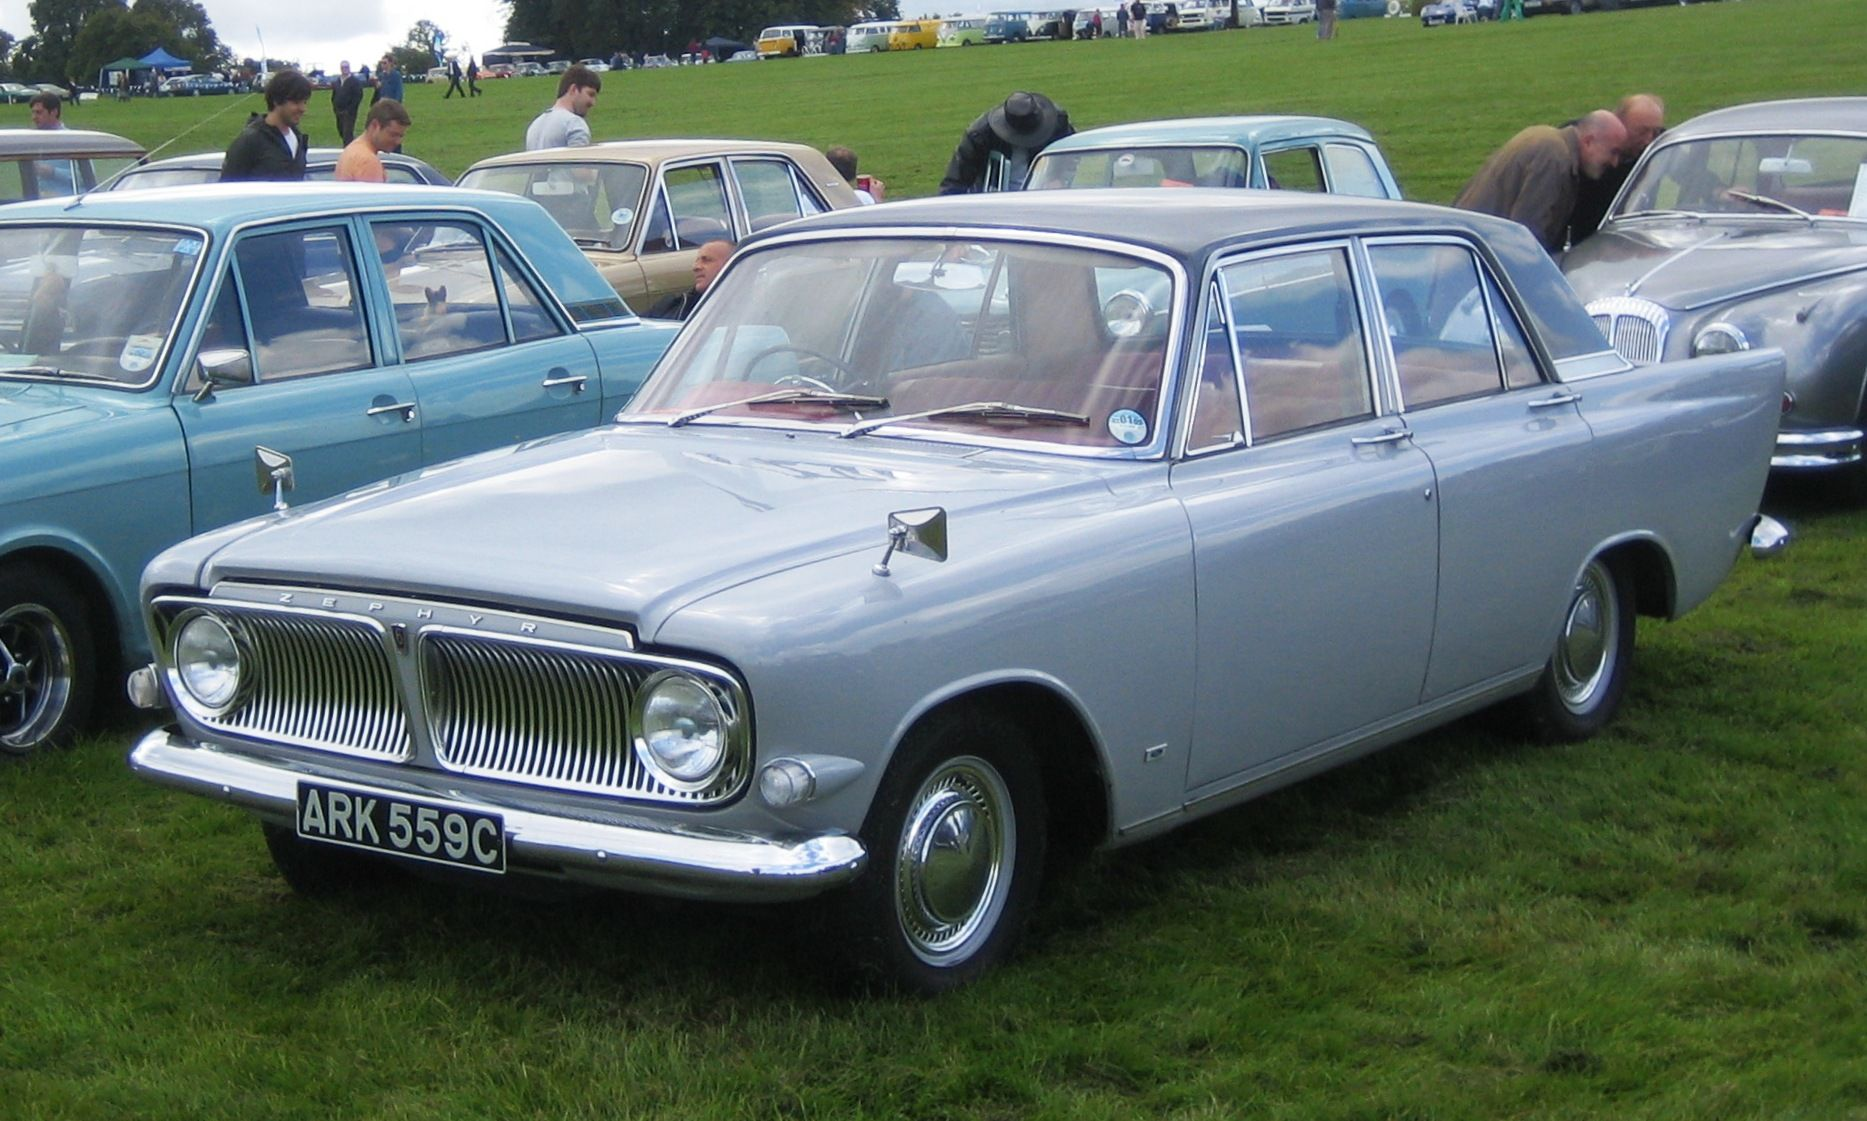 Ford Zephyr Wikipedia Ford Zephyr Ford Zephyr